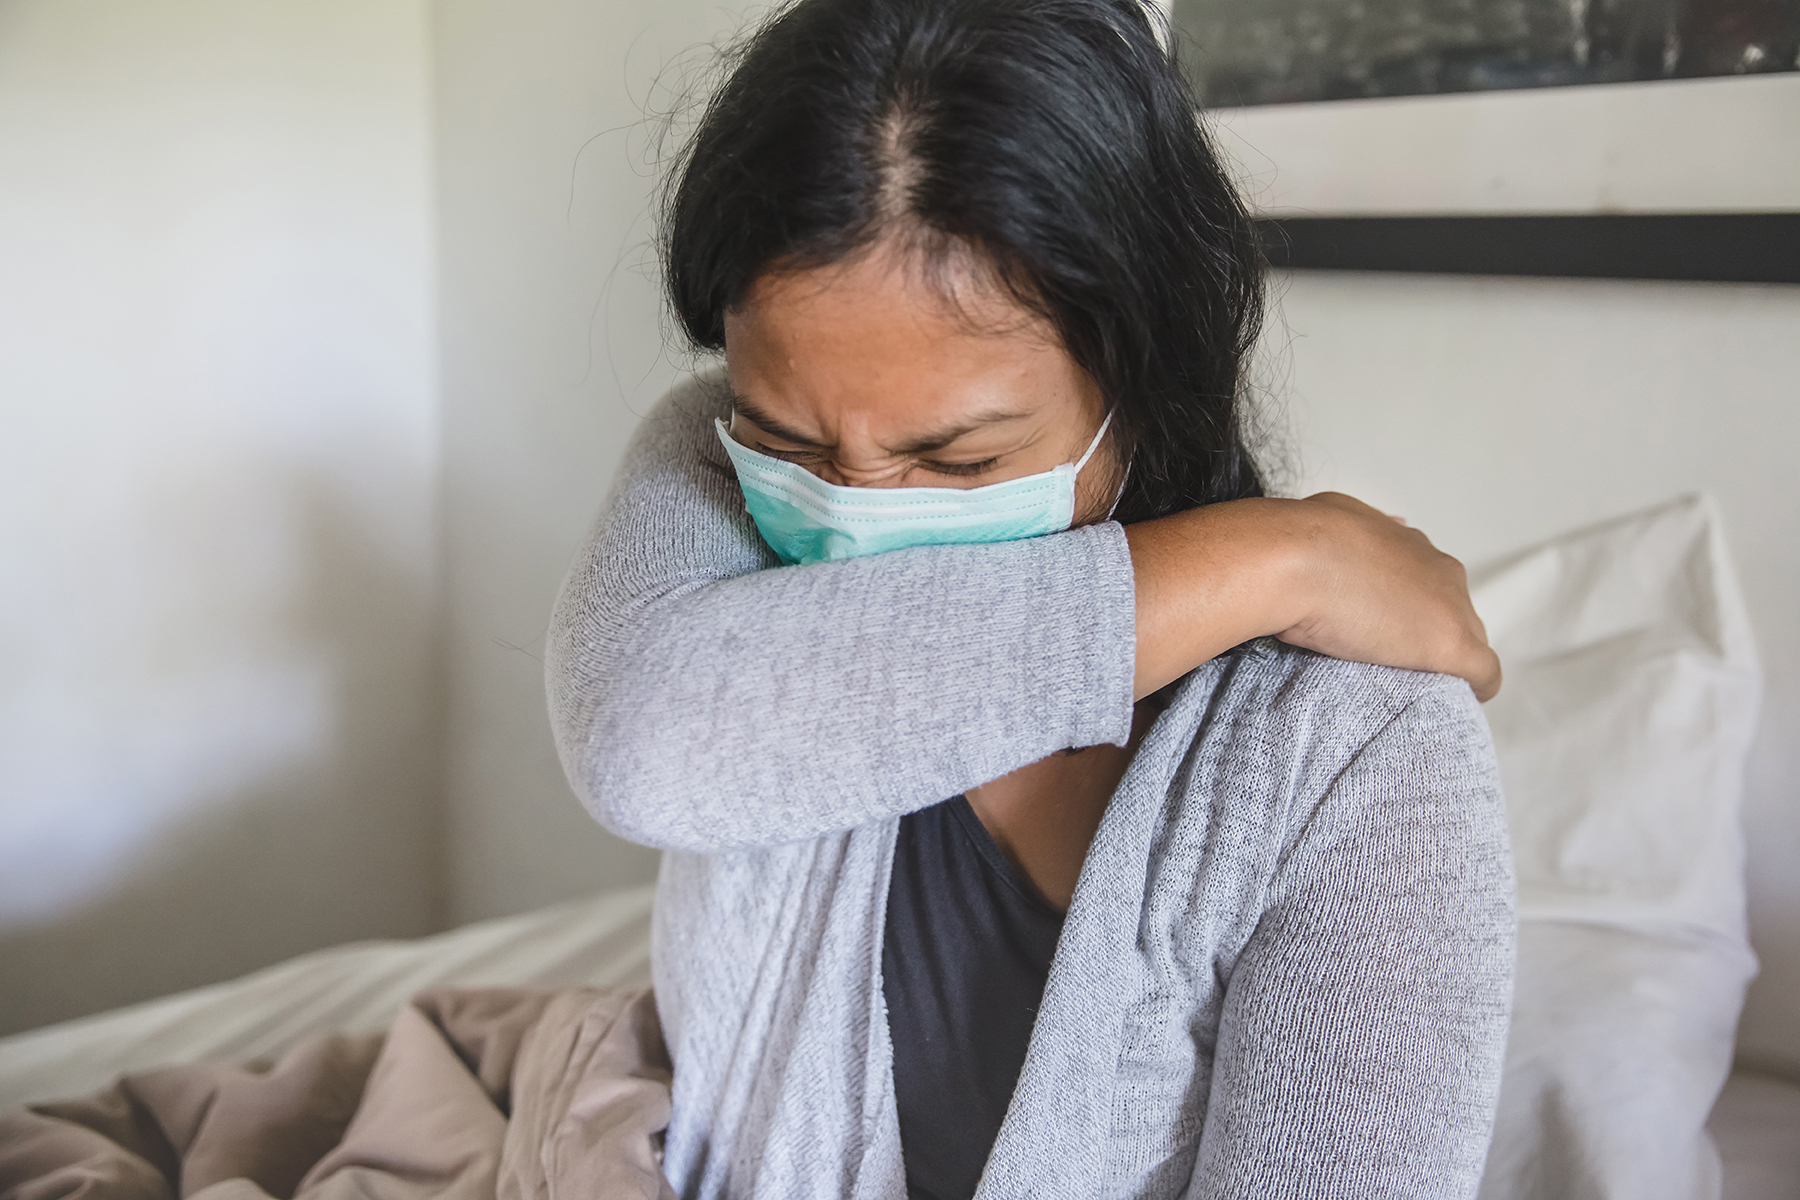 Portrait shot of Asian woman sick in bed,  covering cough with elbow, during home quarantine Covid 19